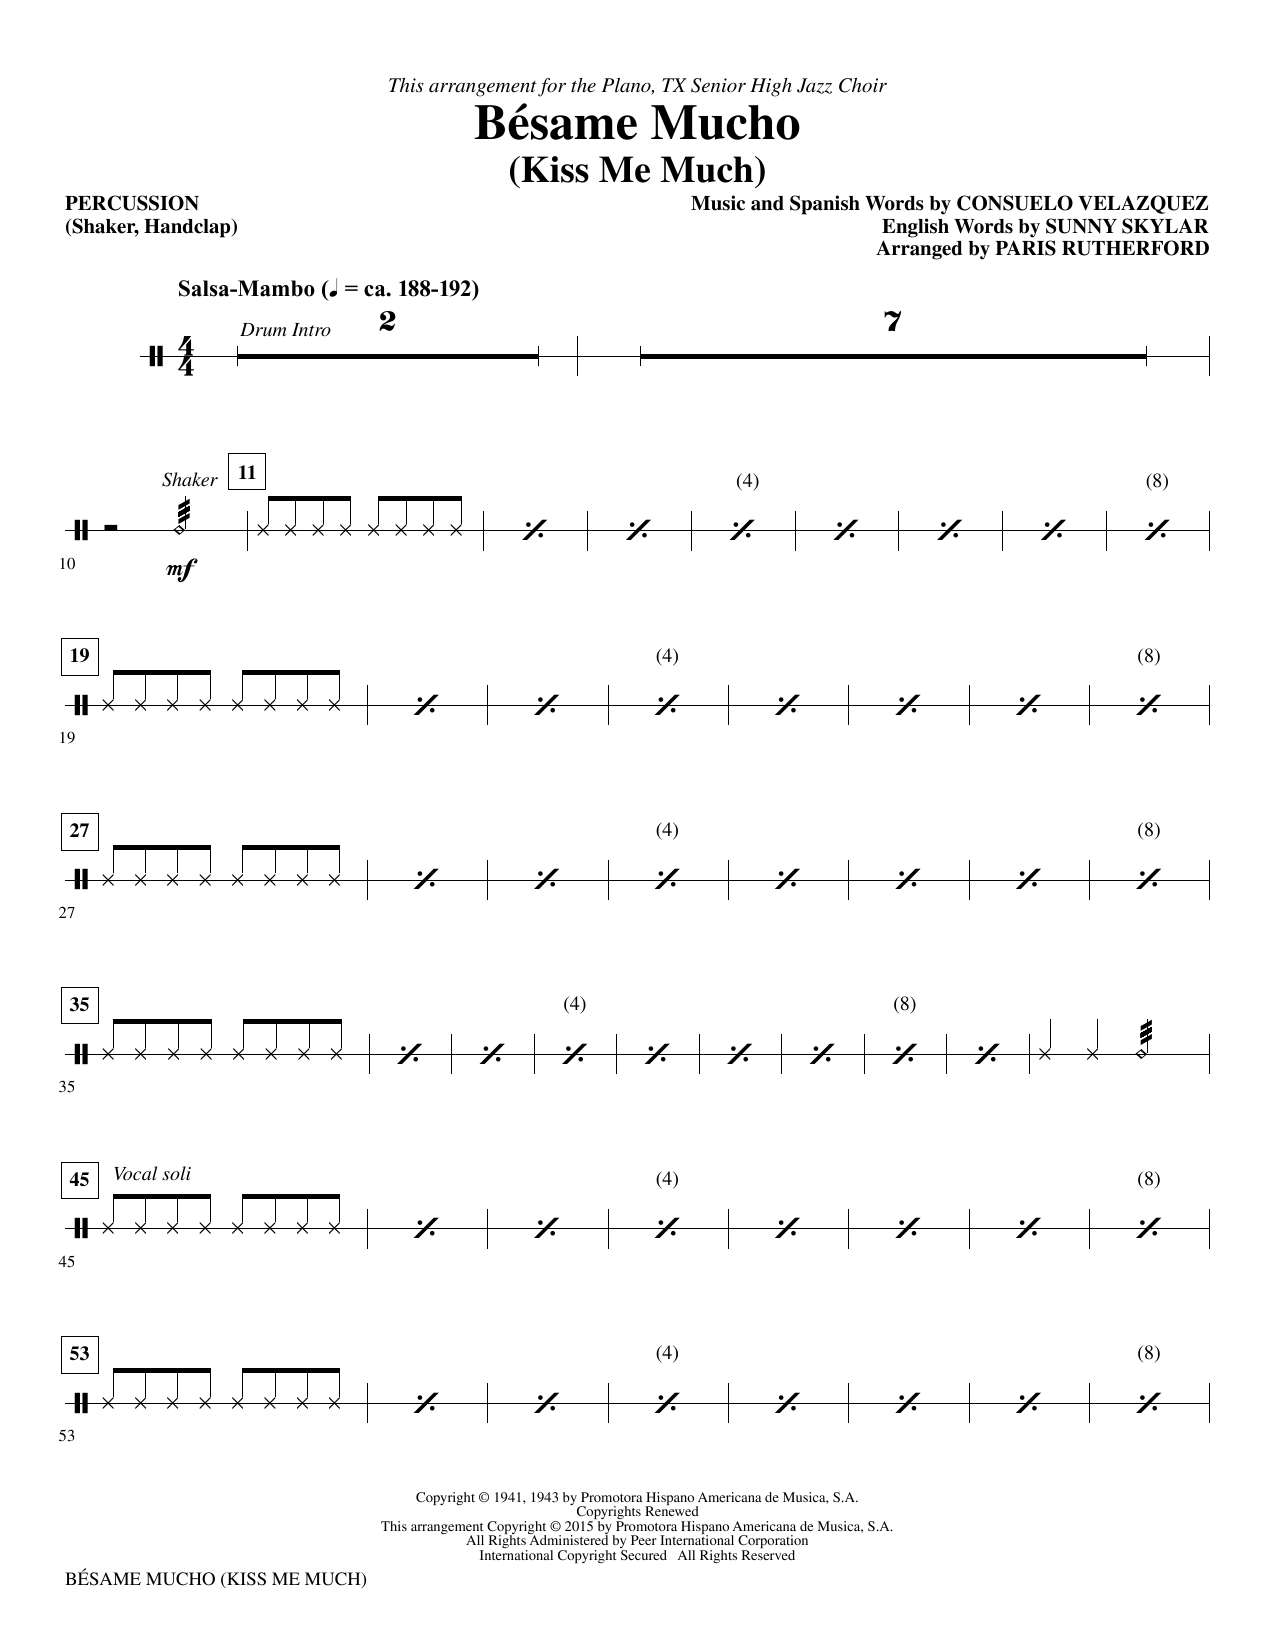 Besame Mucho (Kiss Me Much) - Percussion sheet music